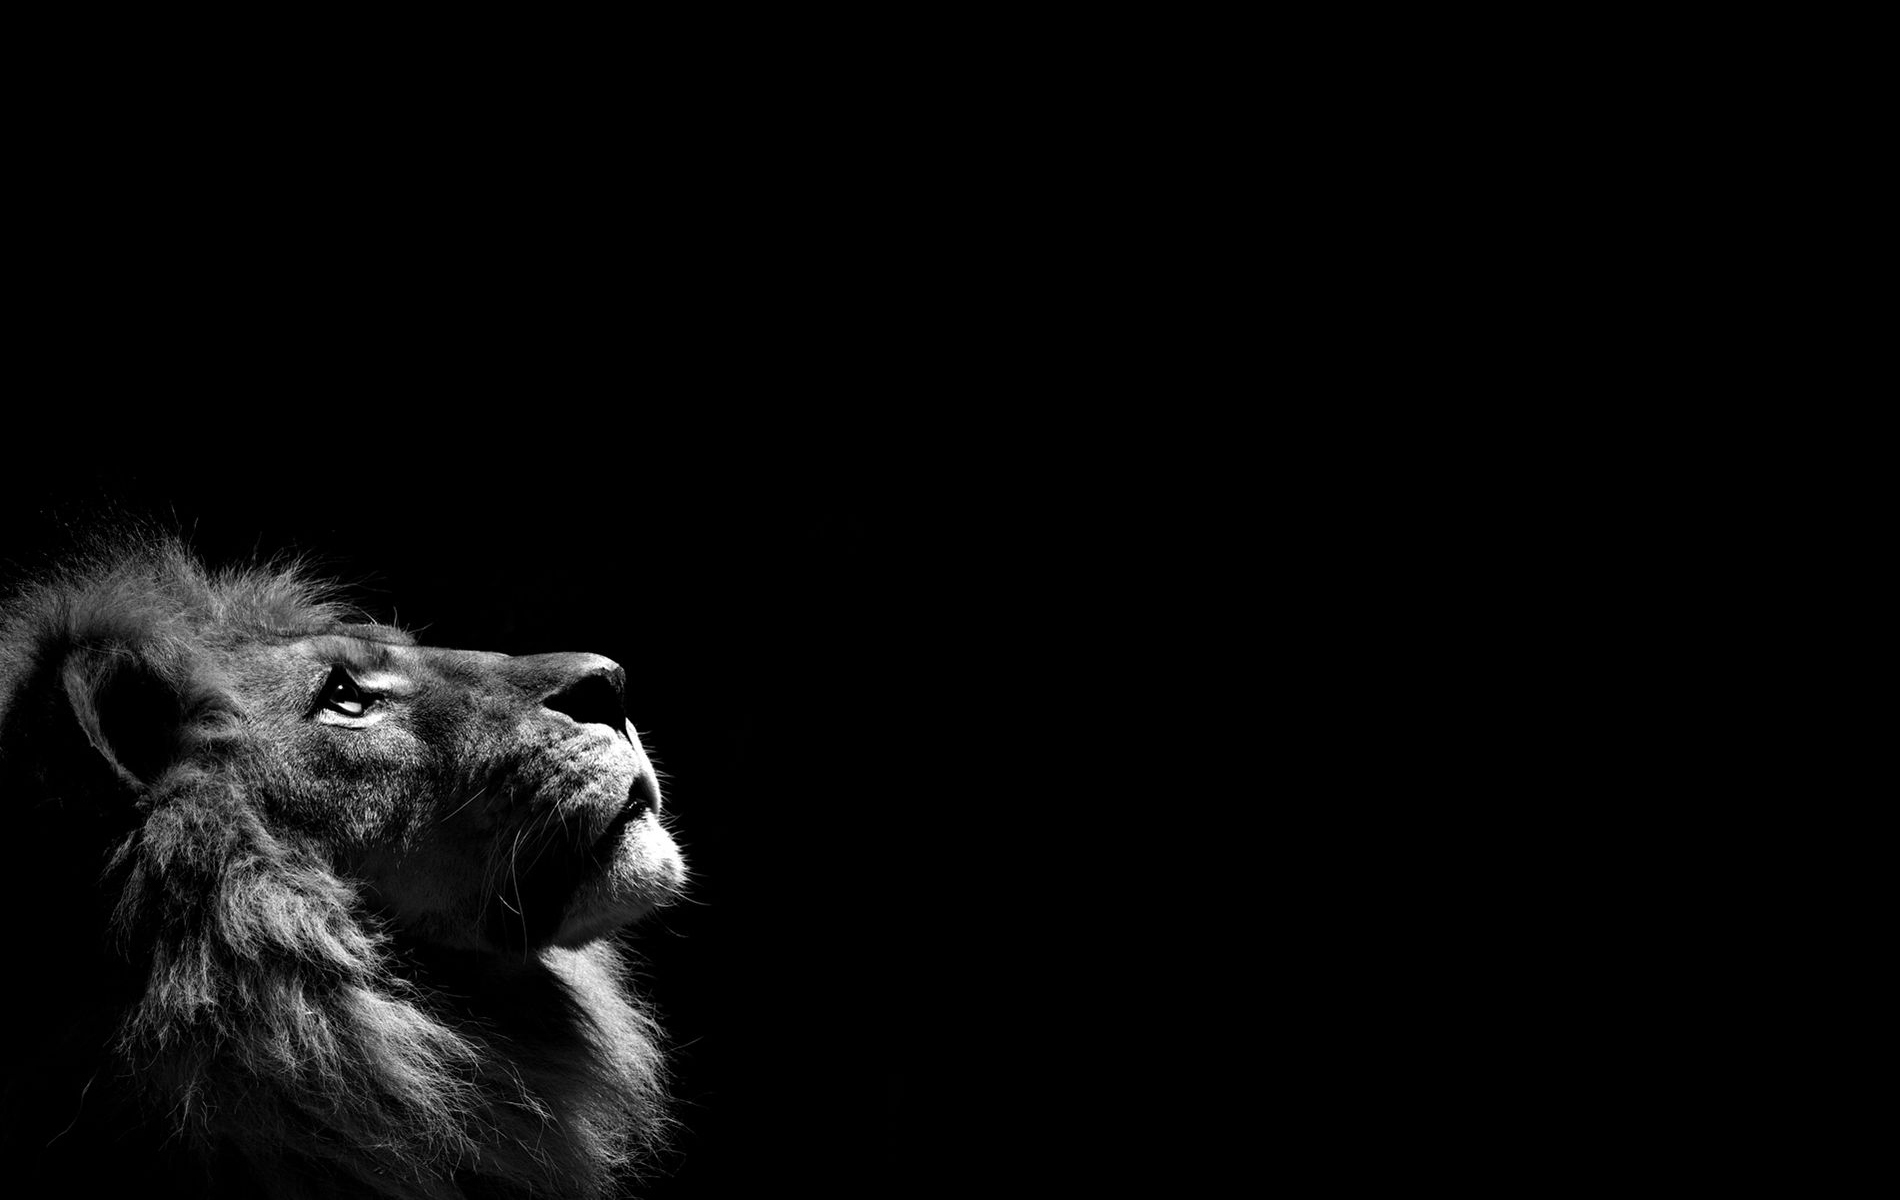 lion hd wallpapers lion